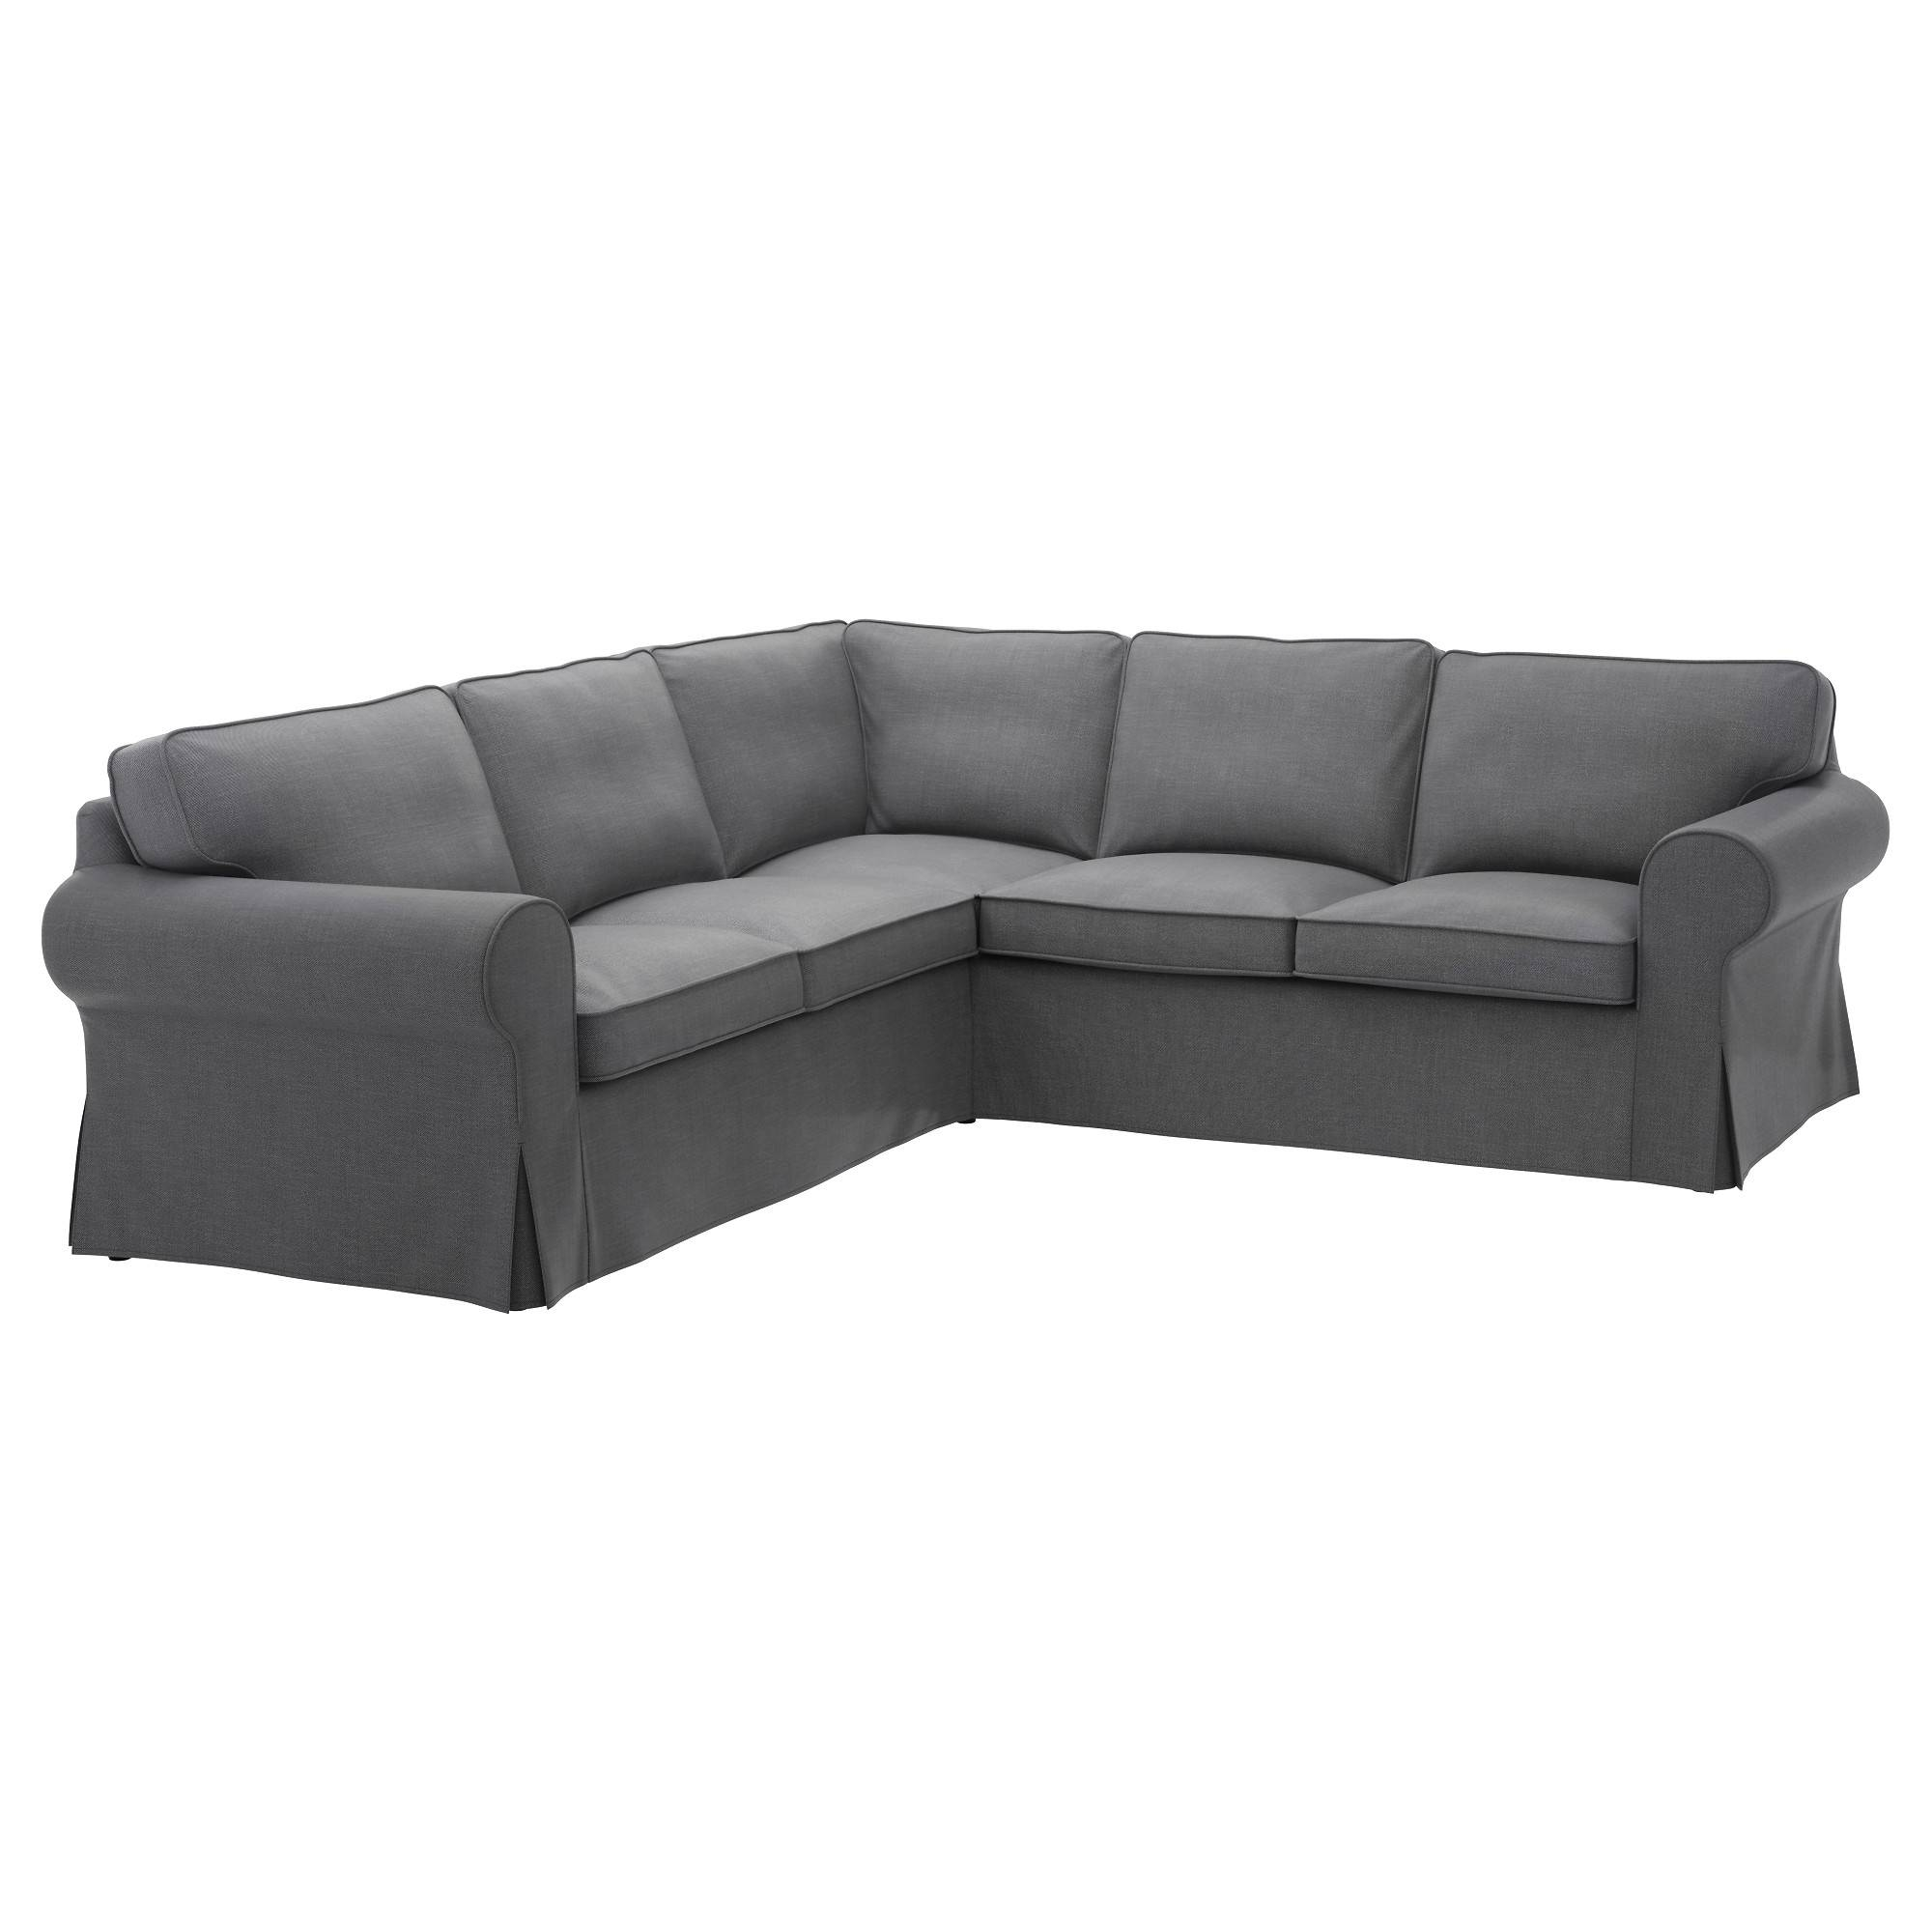 Fabric Sectional Sofas - Ikea throughout Sectinal Sofas (Image 7 of 30)